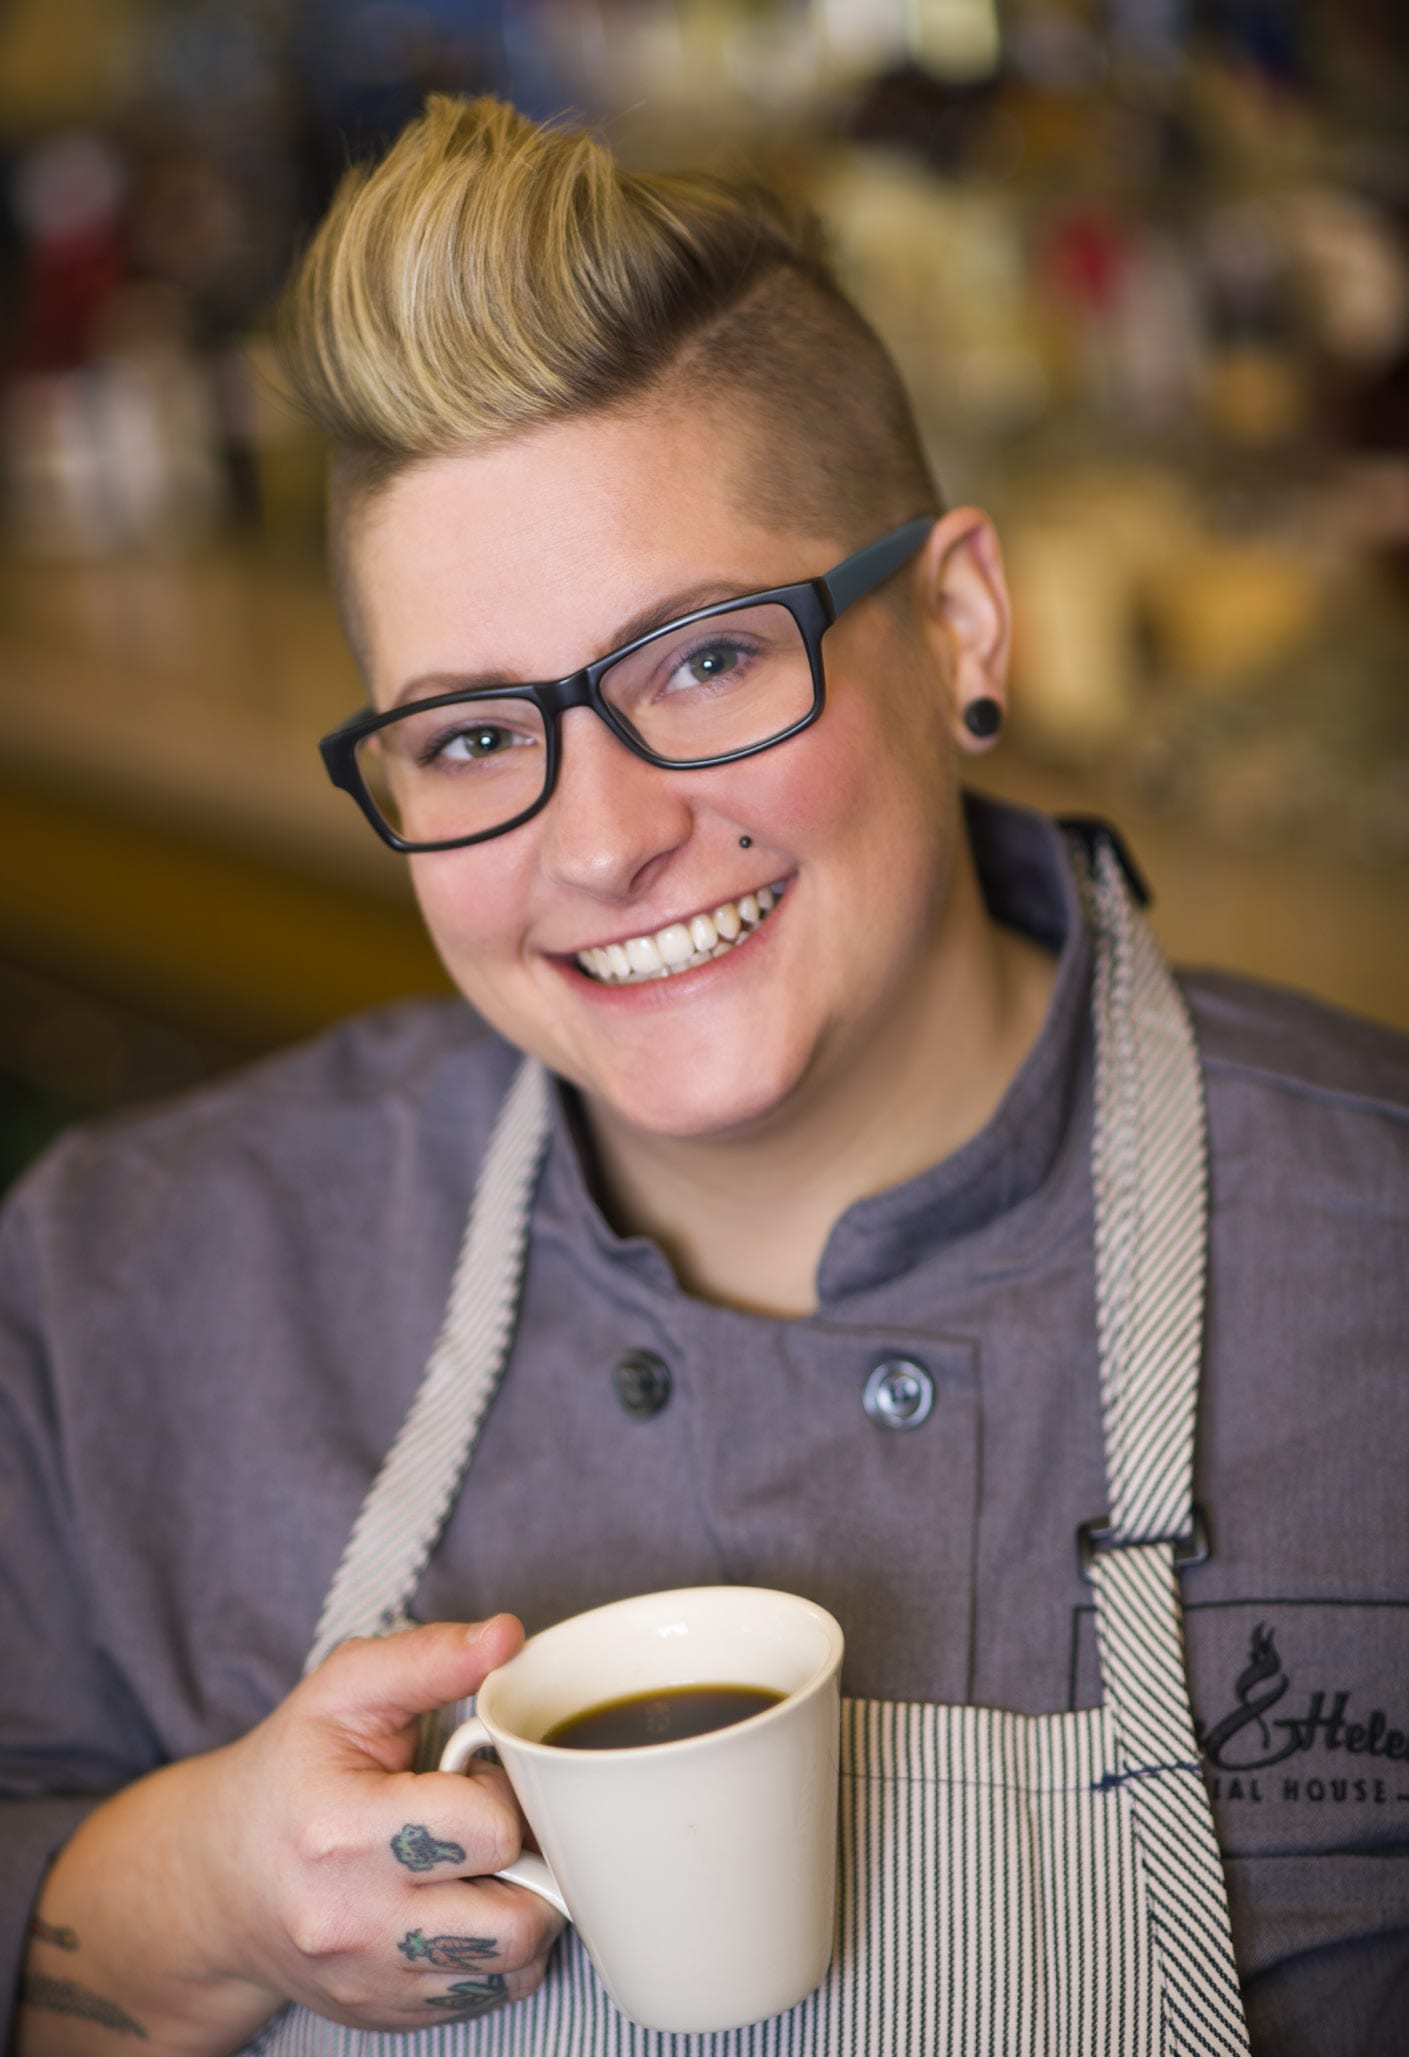 Maria Wunderlin, executive chef at Rack & Helen's Social House Fort Wayne holding a cup of coffee